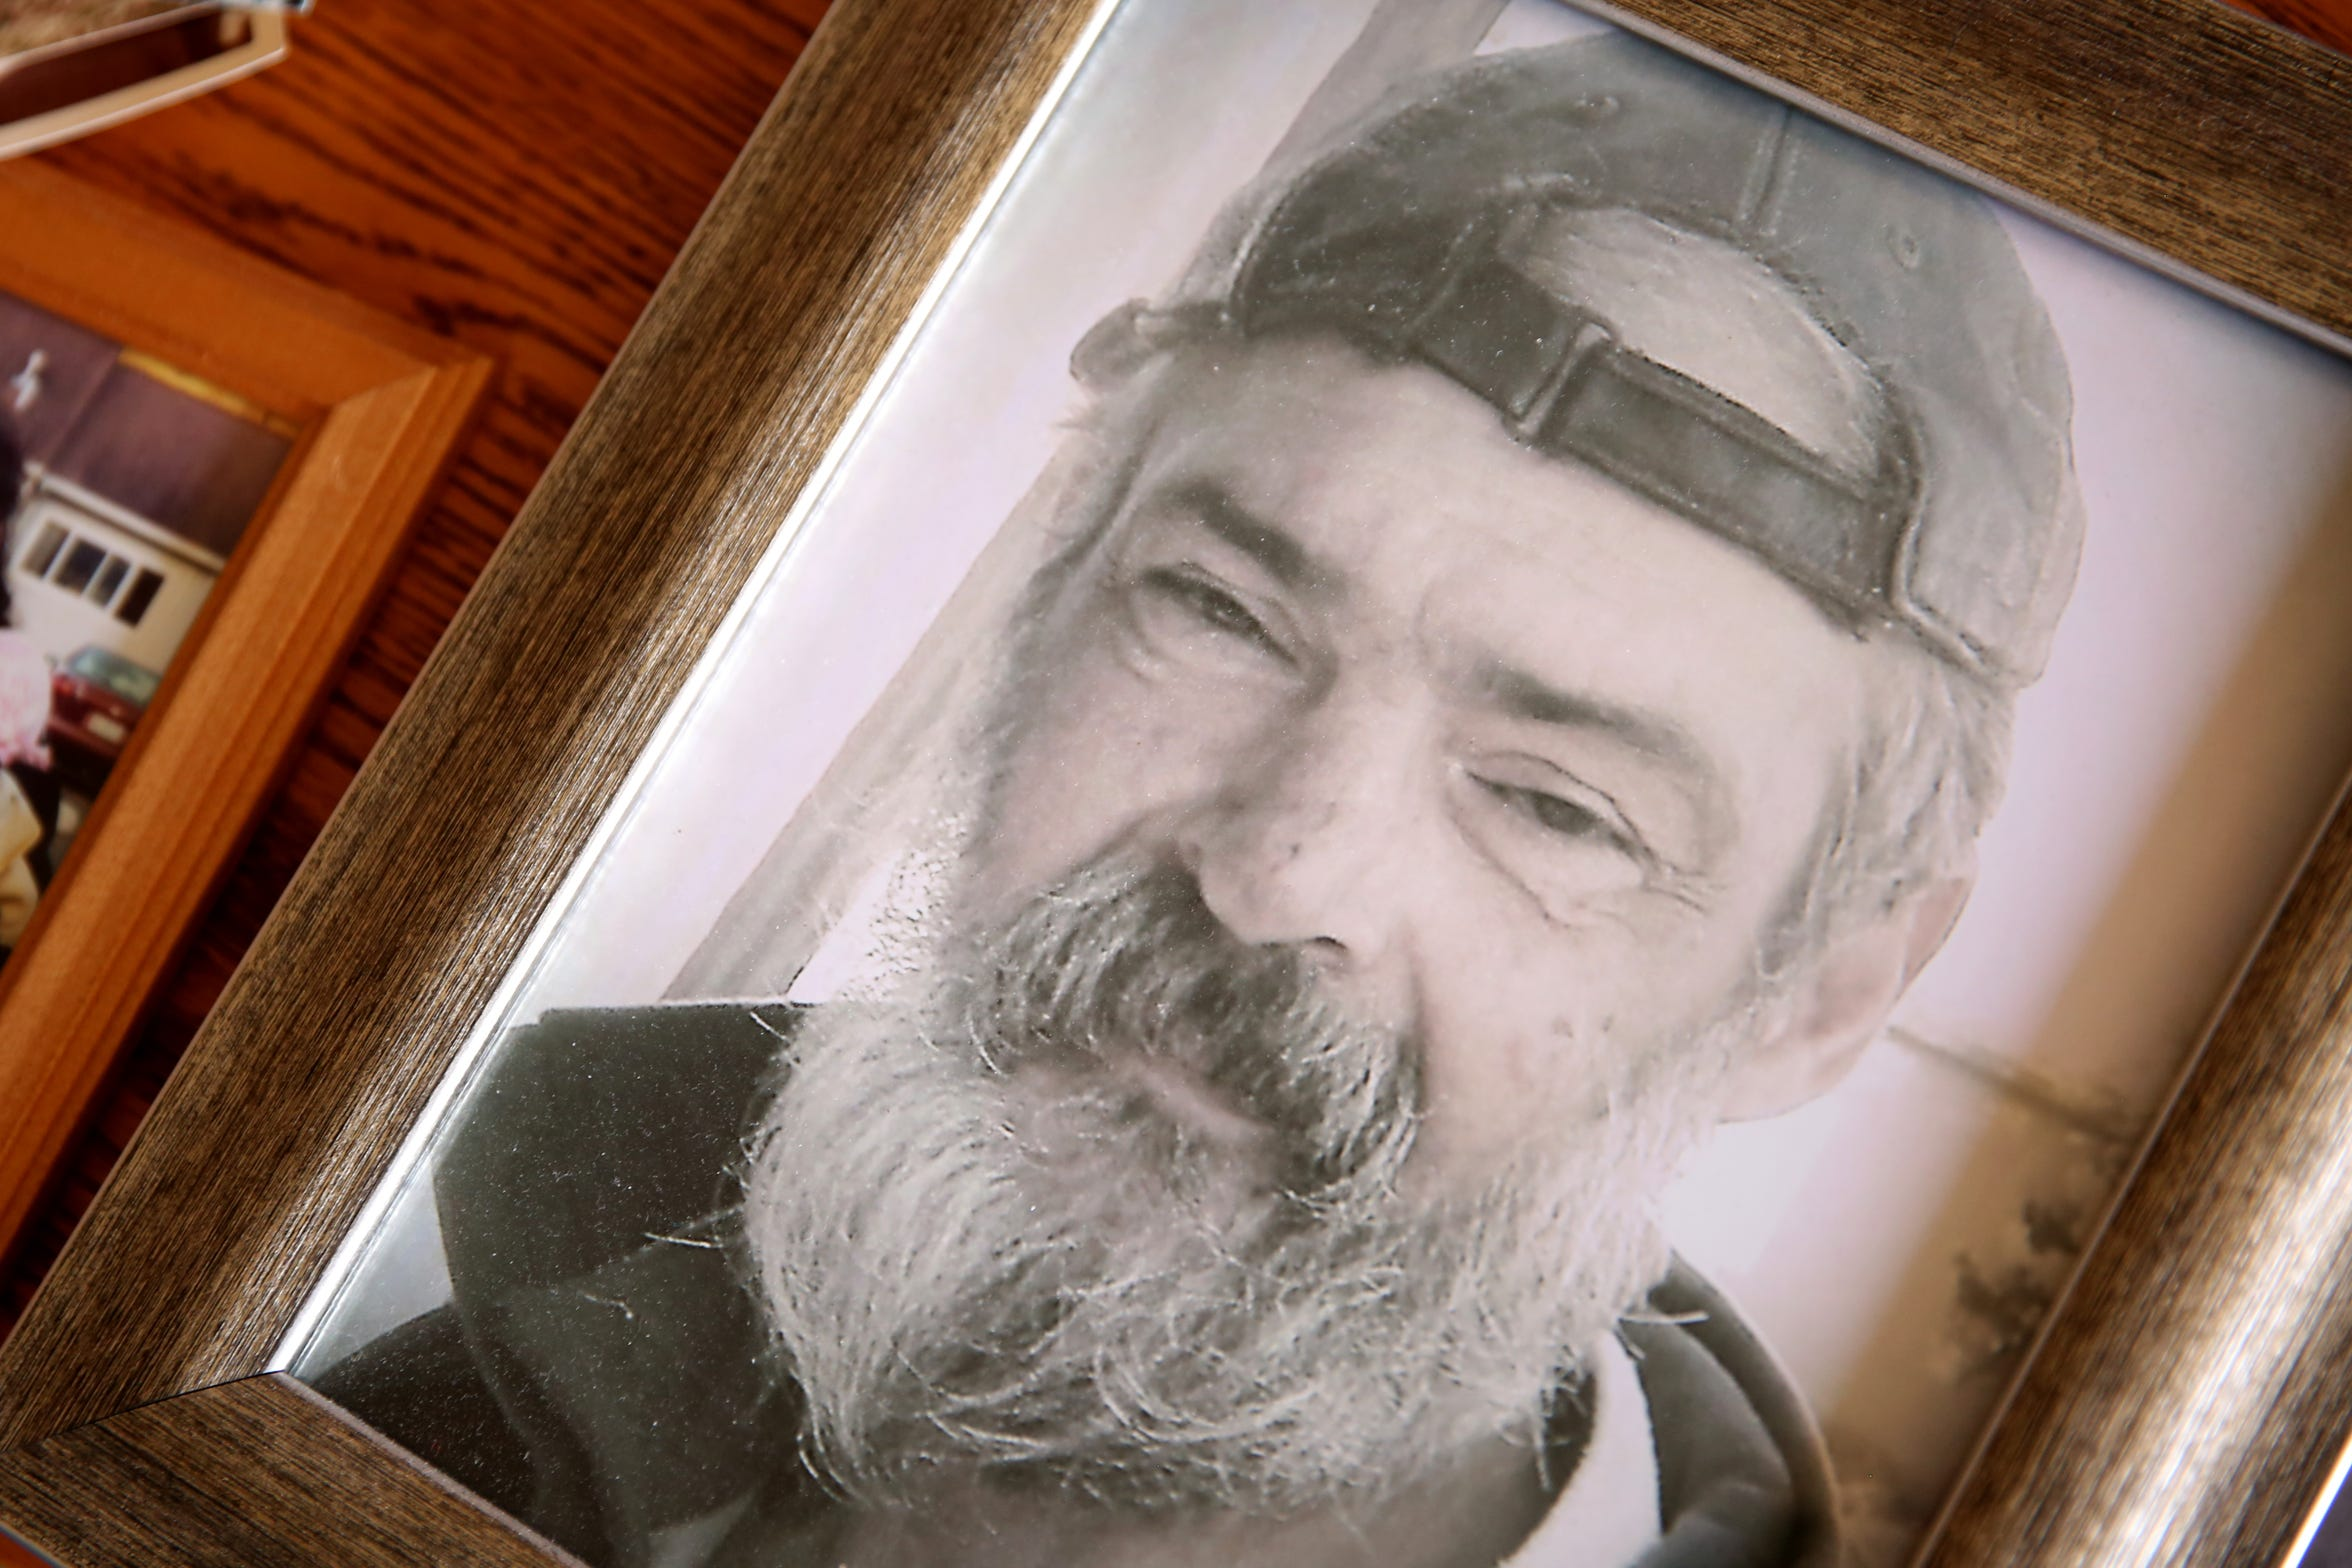 A framed photograph of George Cook, who died of exposure in November 2017 after being homeless in Salem for years. Photographed in his mother's Salem home on Wednesday, July 18, 2018.